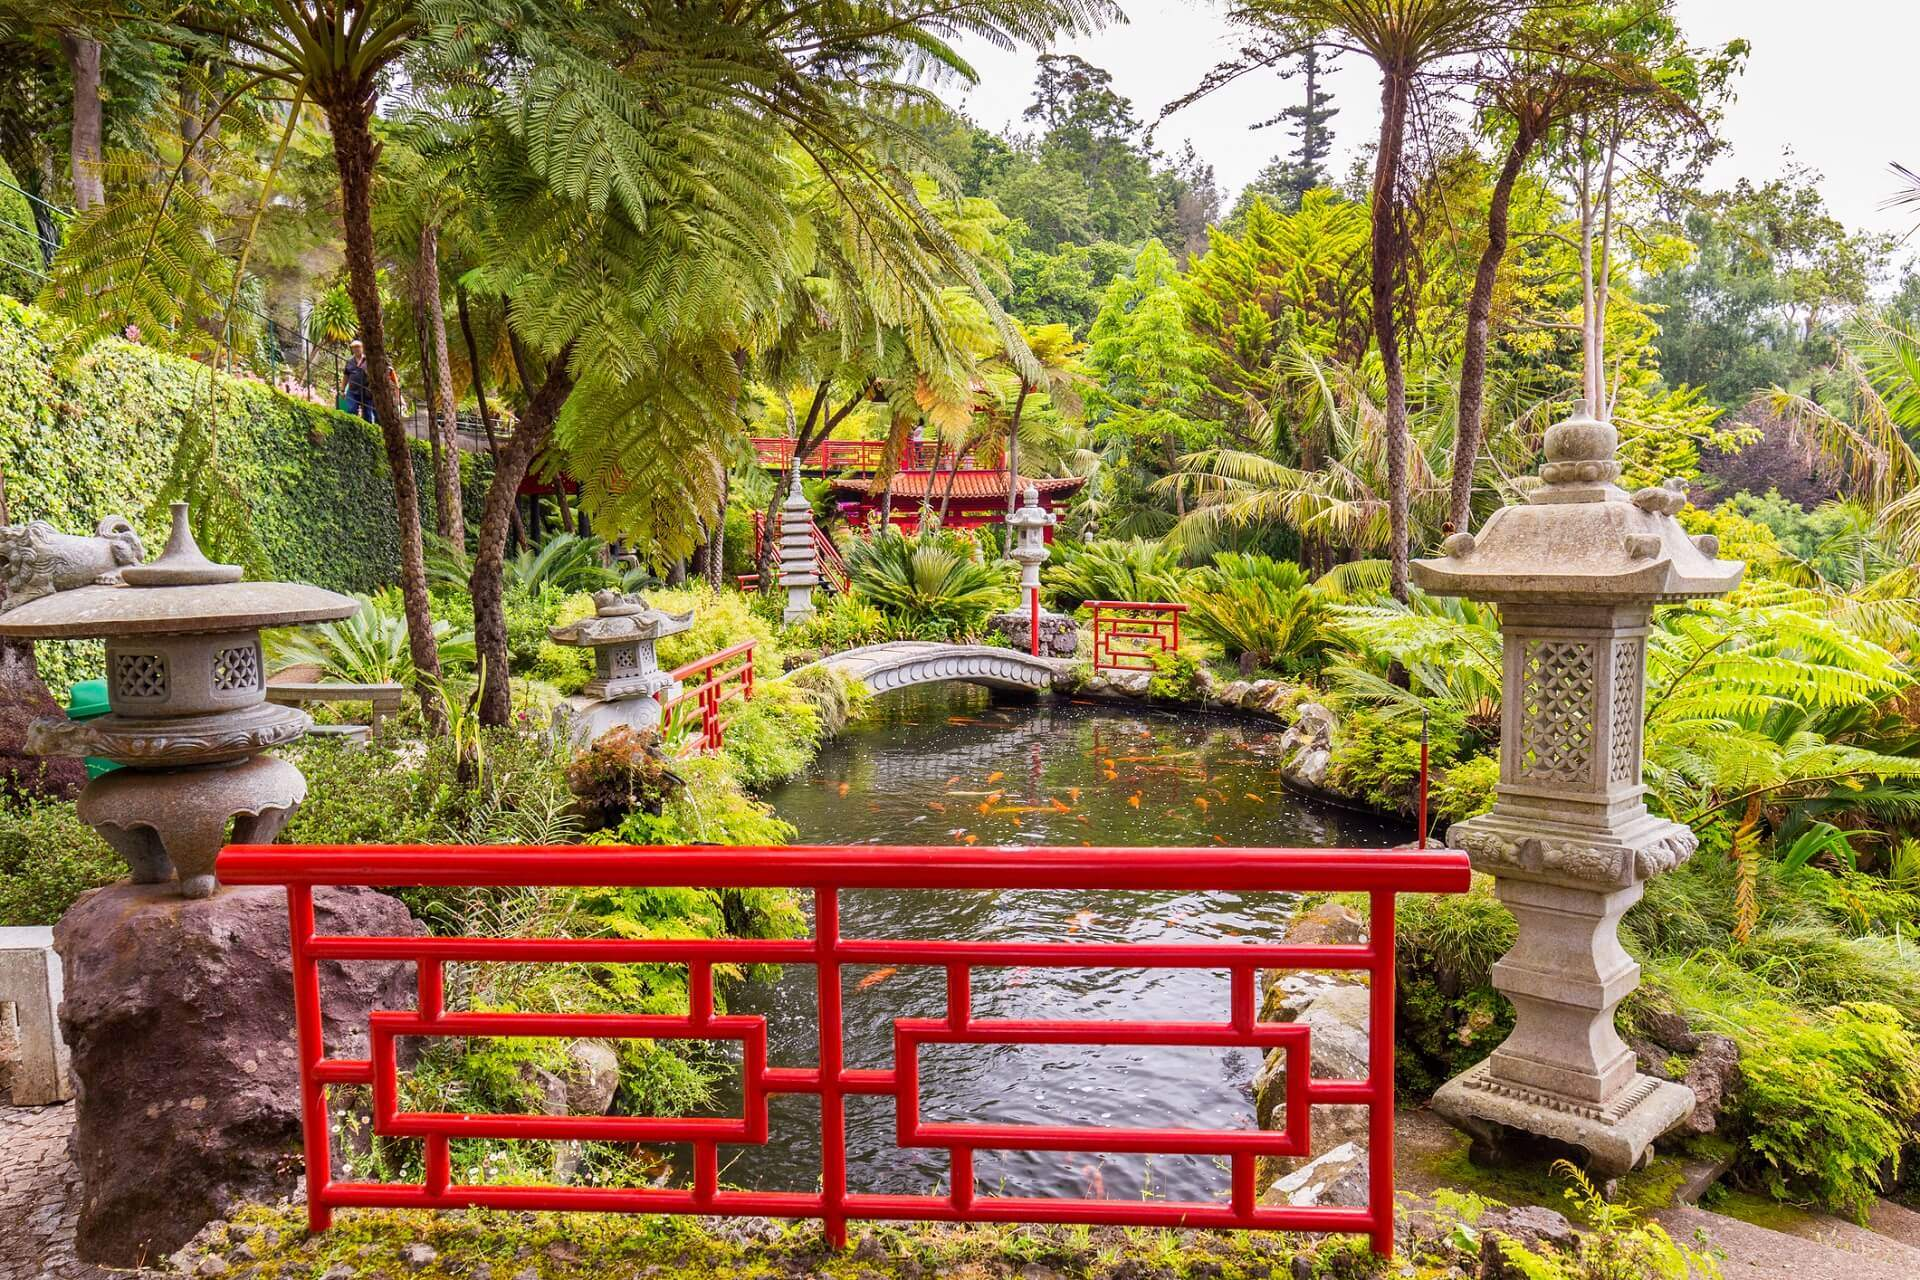 Monte Palace Tropican Garden in Funchal Madeira island EDITORIAL ONLY DaLiu iStock